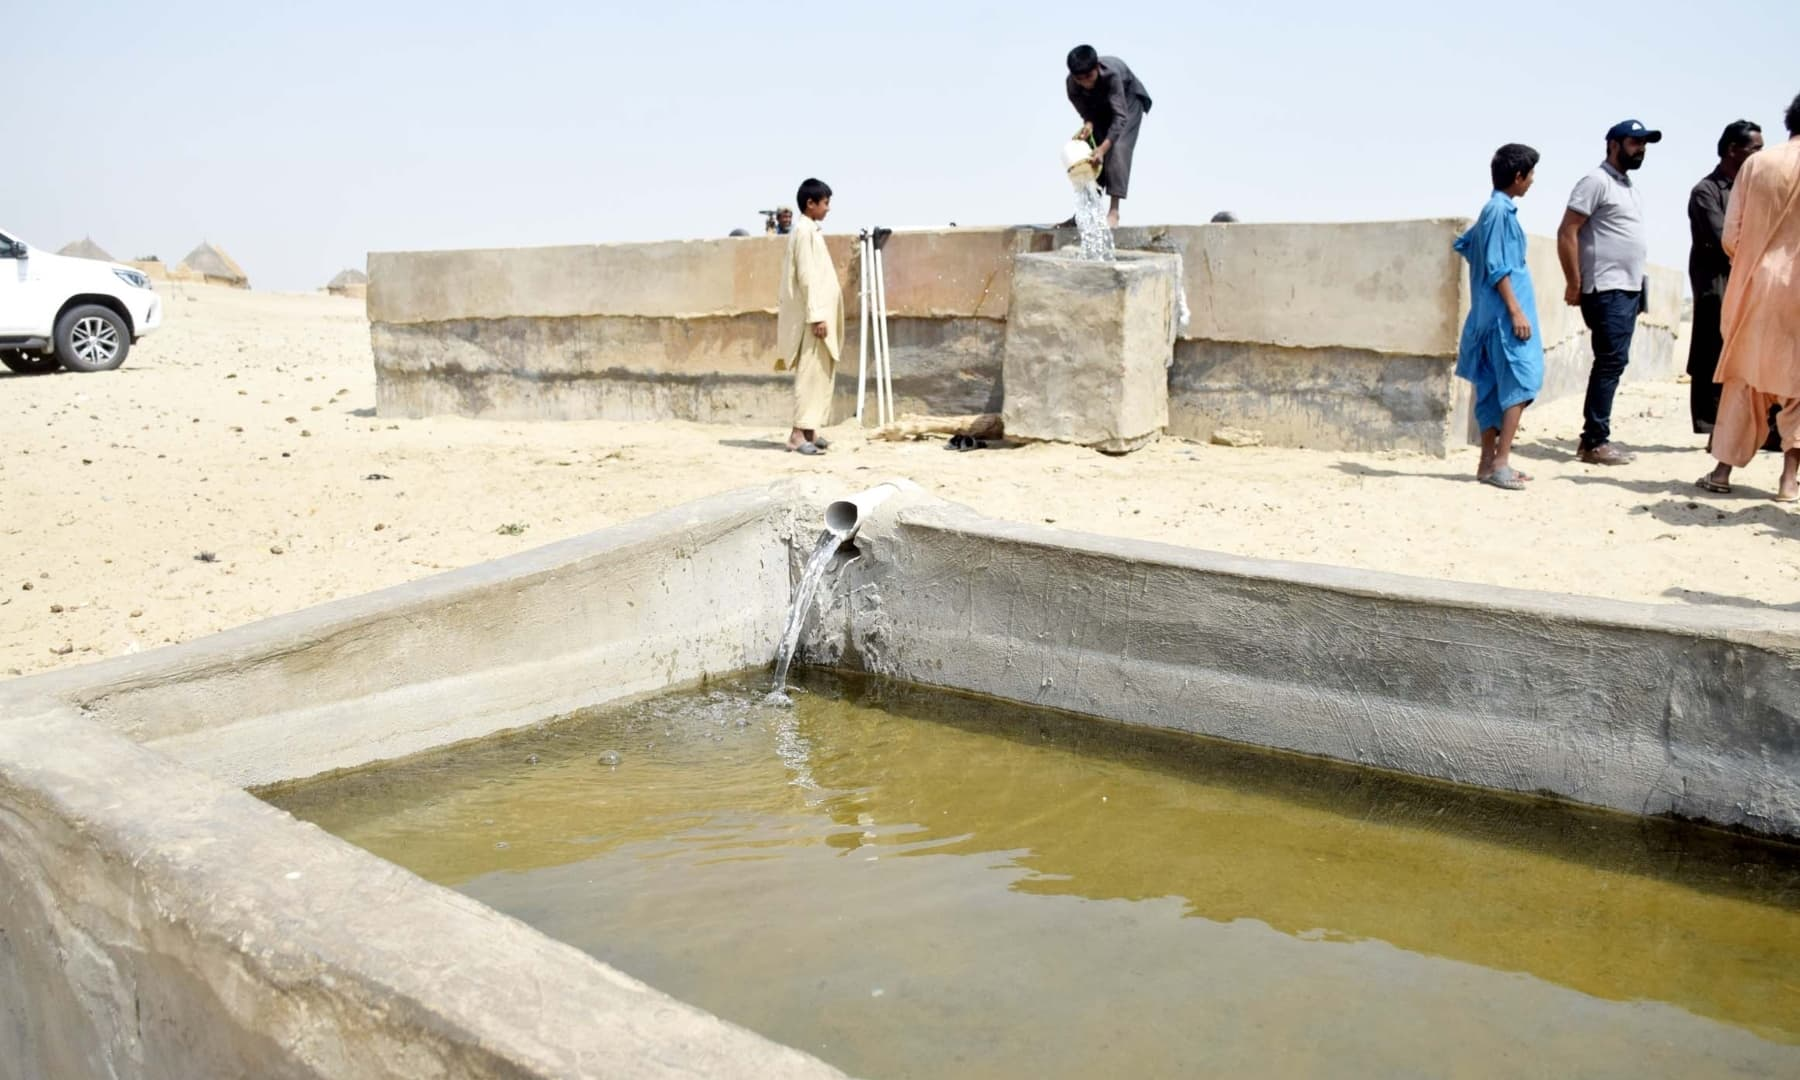 Water is transferred to a storage tank in Achhro Thar, Khipro, Sindh. — Photo by Umair Ali